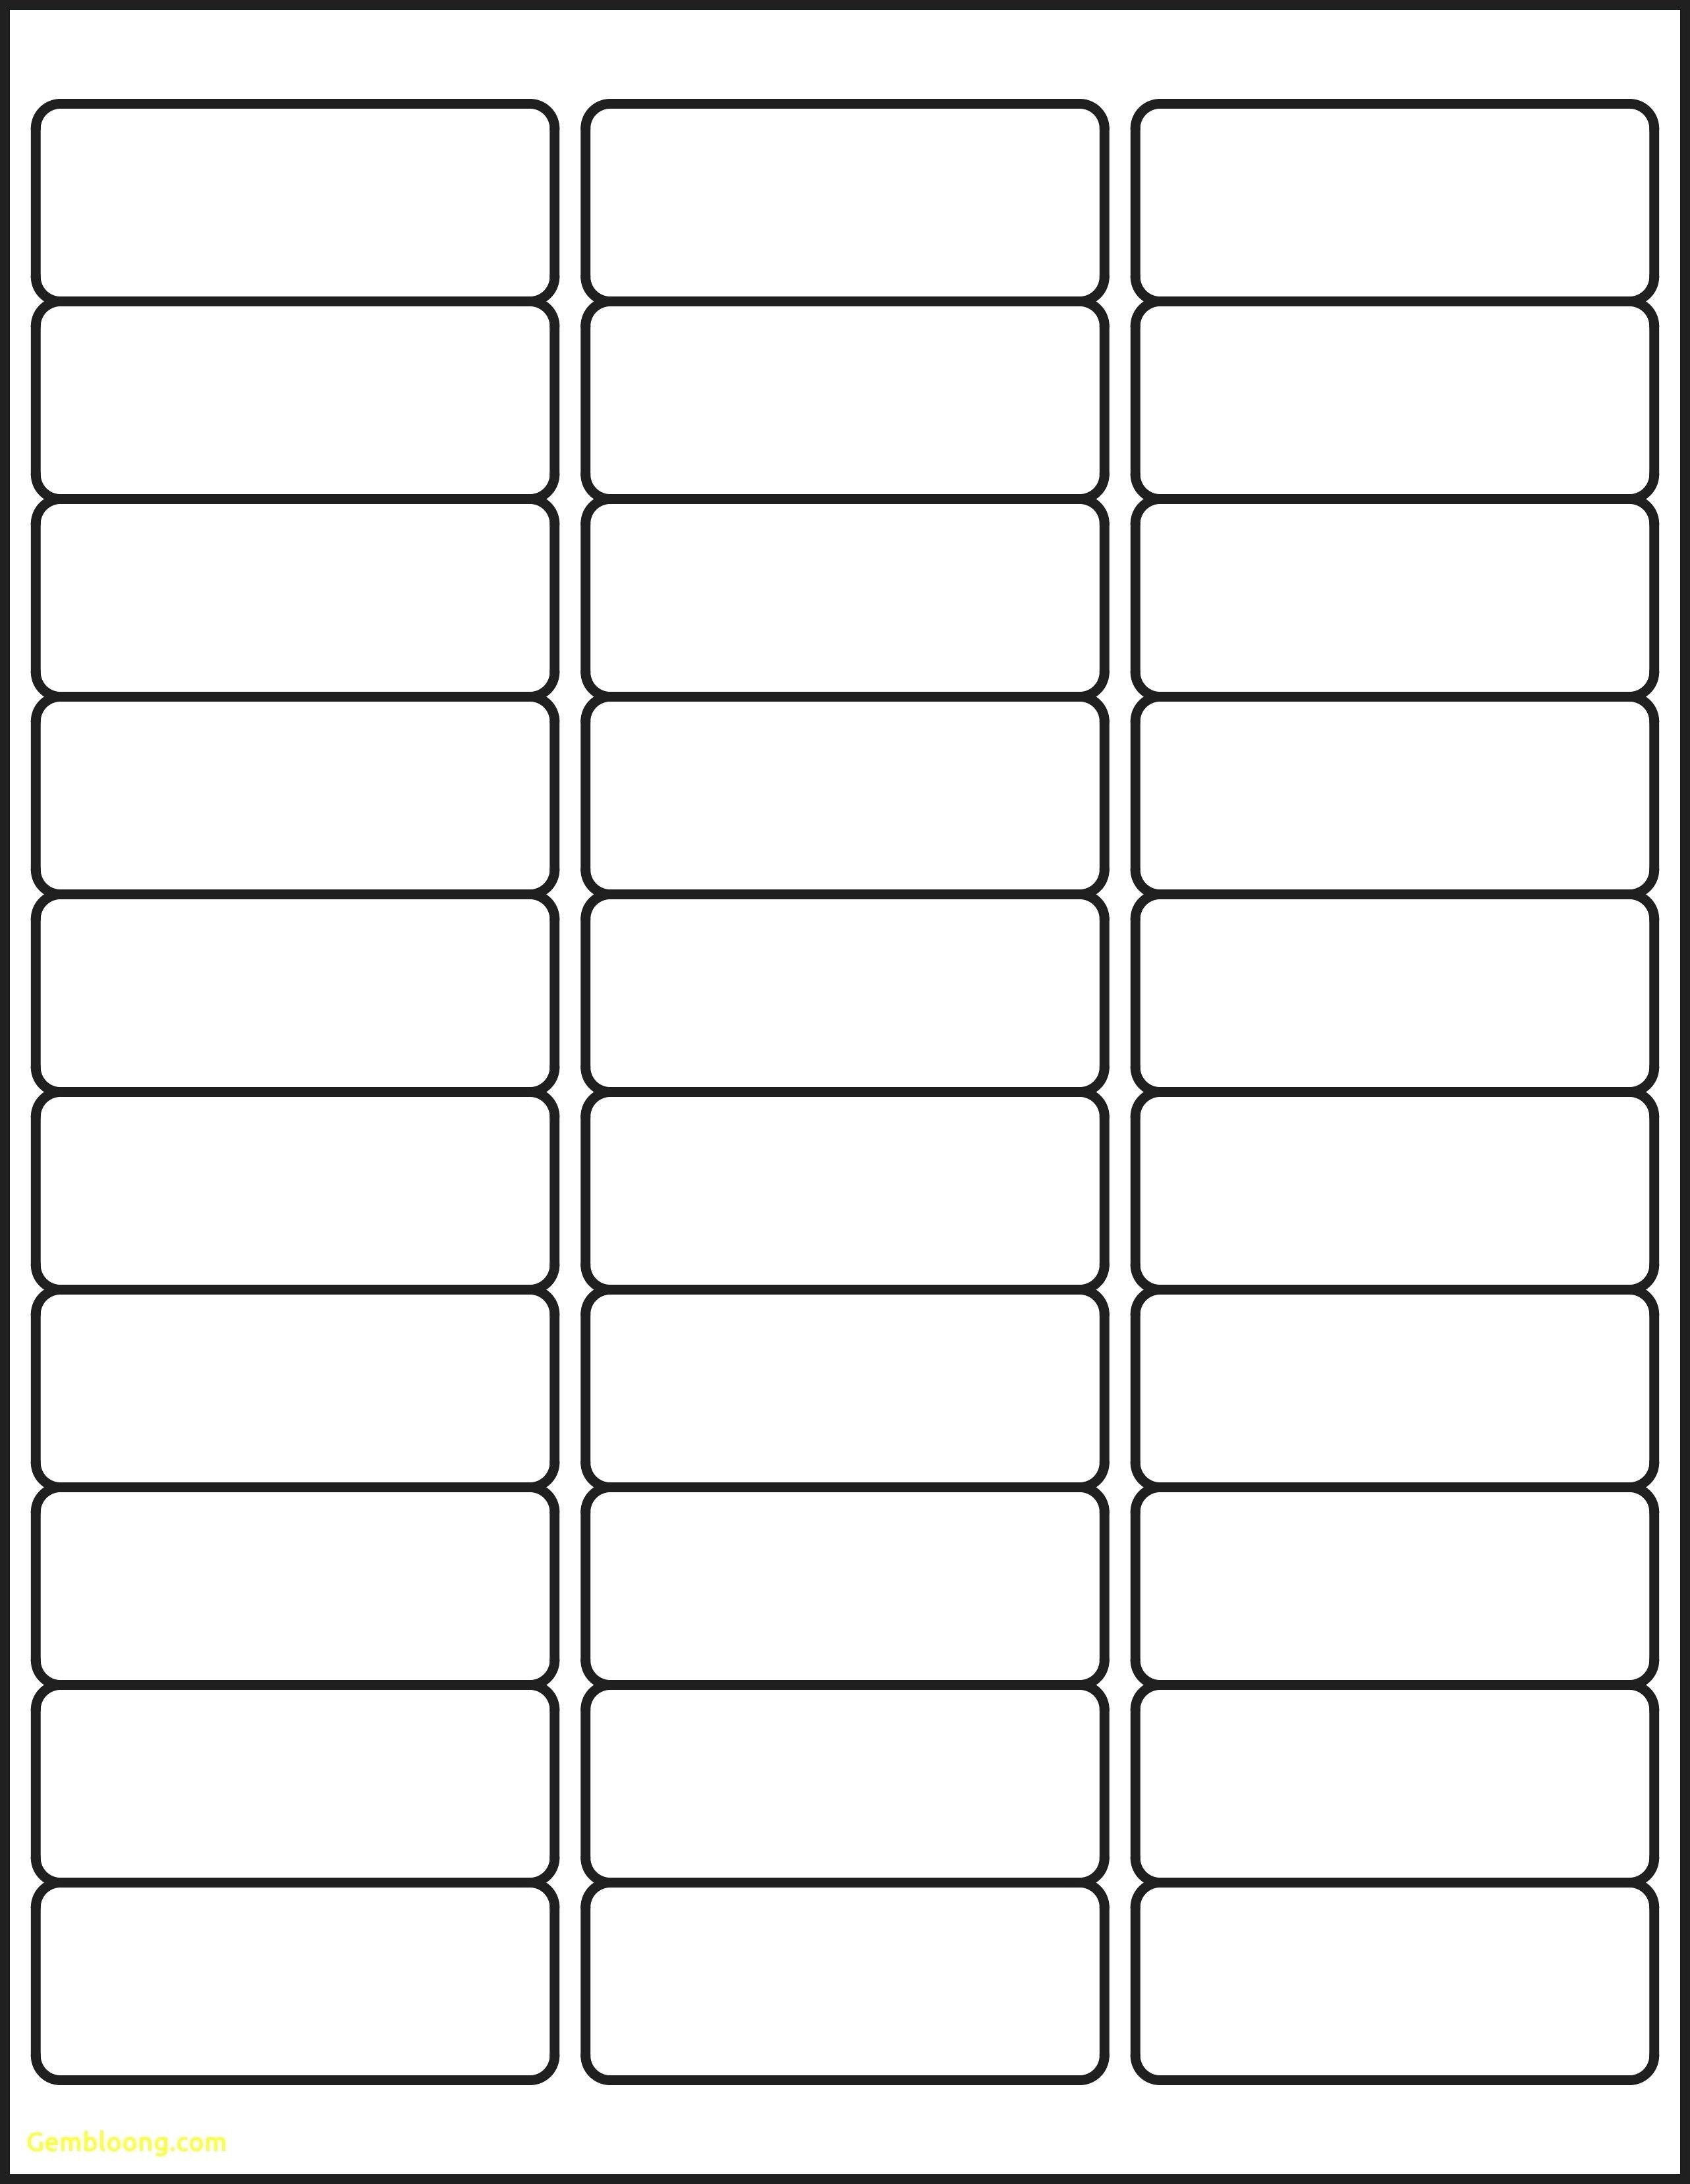 004 Dreaded Label Template For Word Picture  Avery 8 Per Sheet Free Circle A4Full